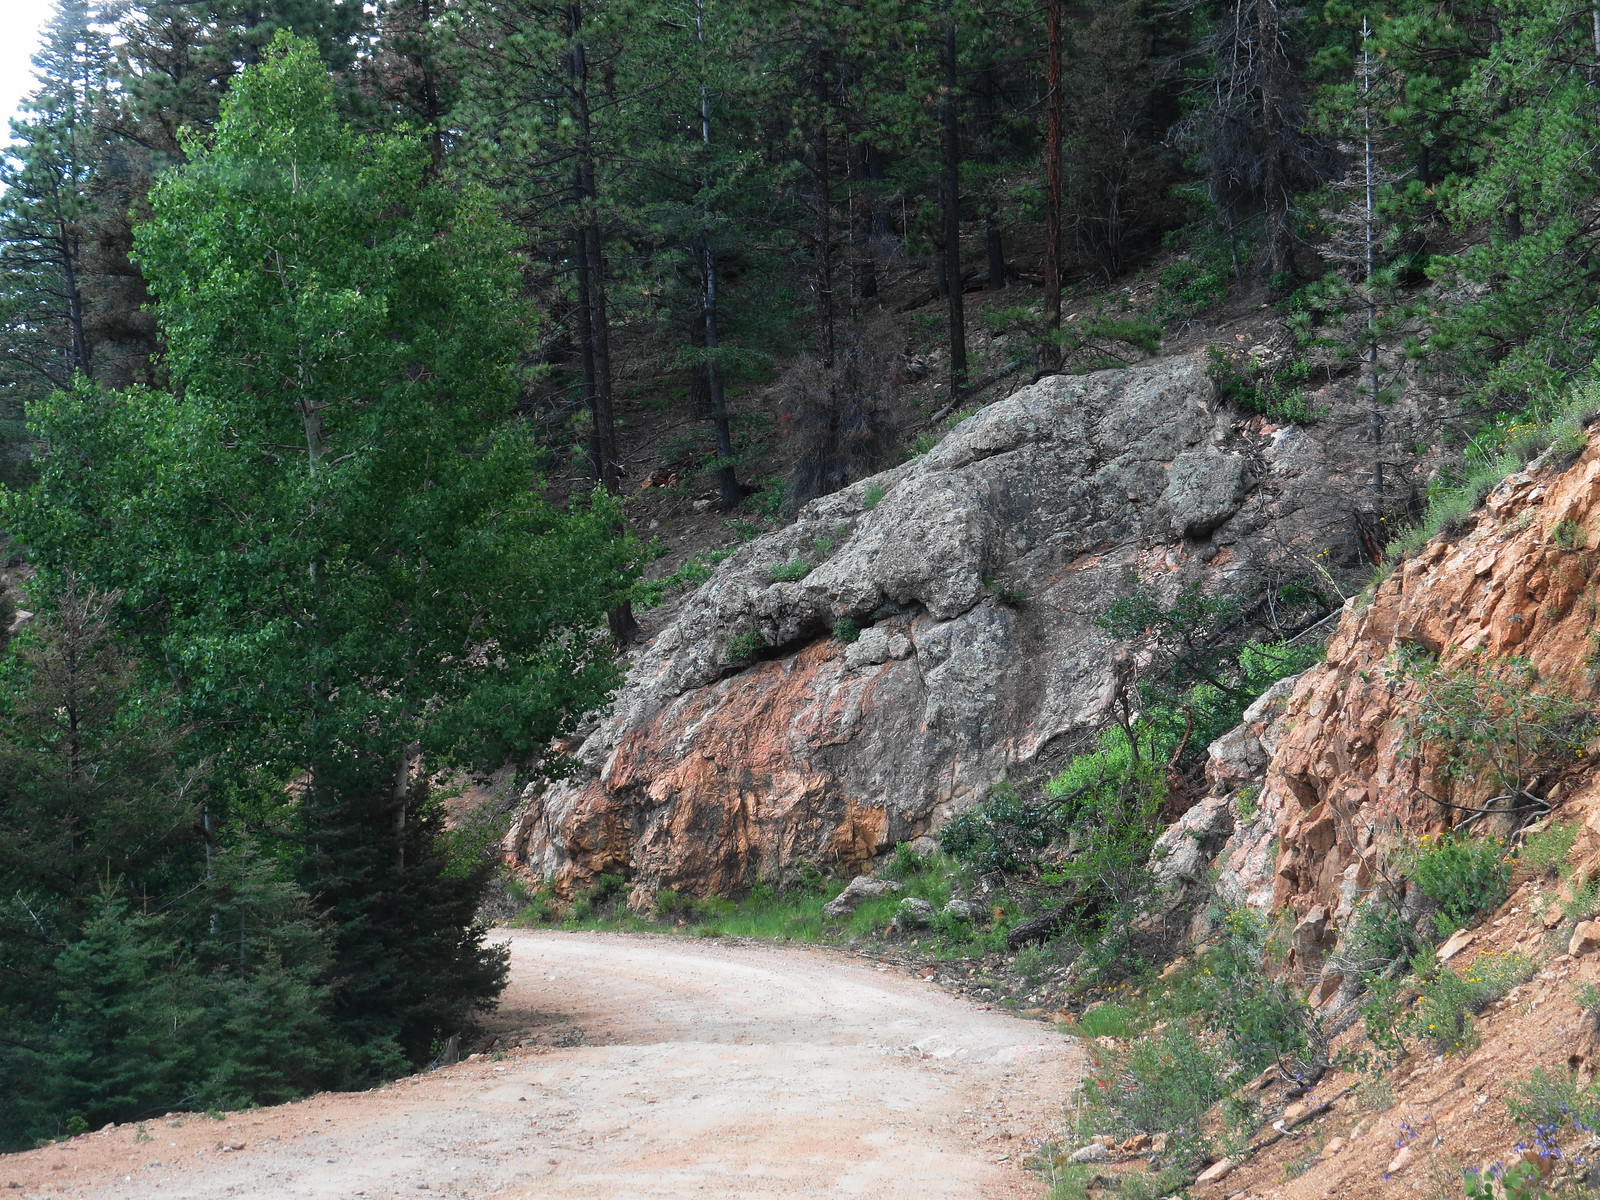 US Forest Service Road 102, Santa Fe NF, NM